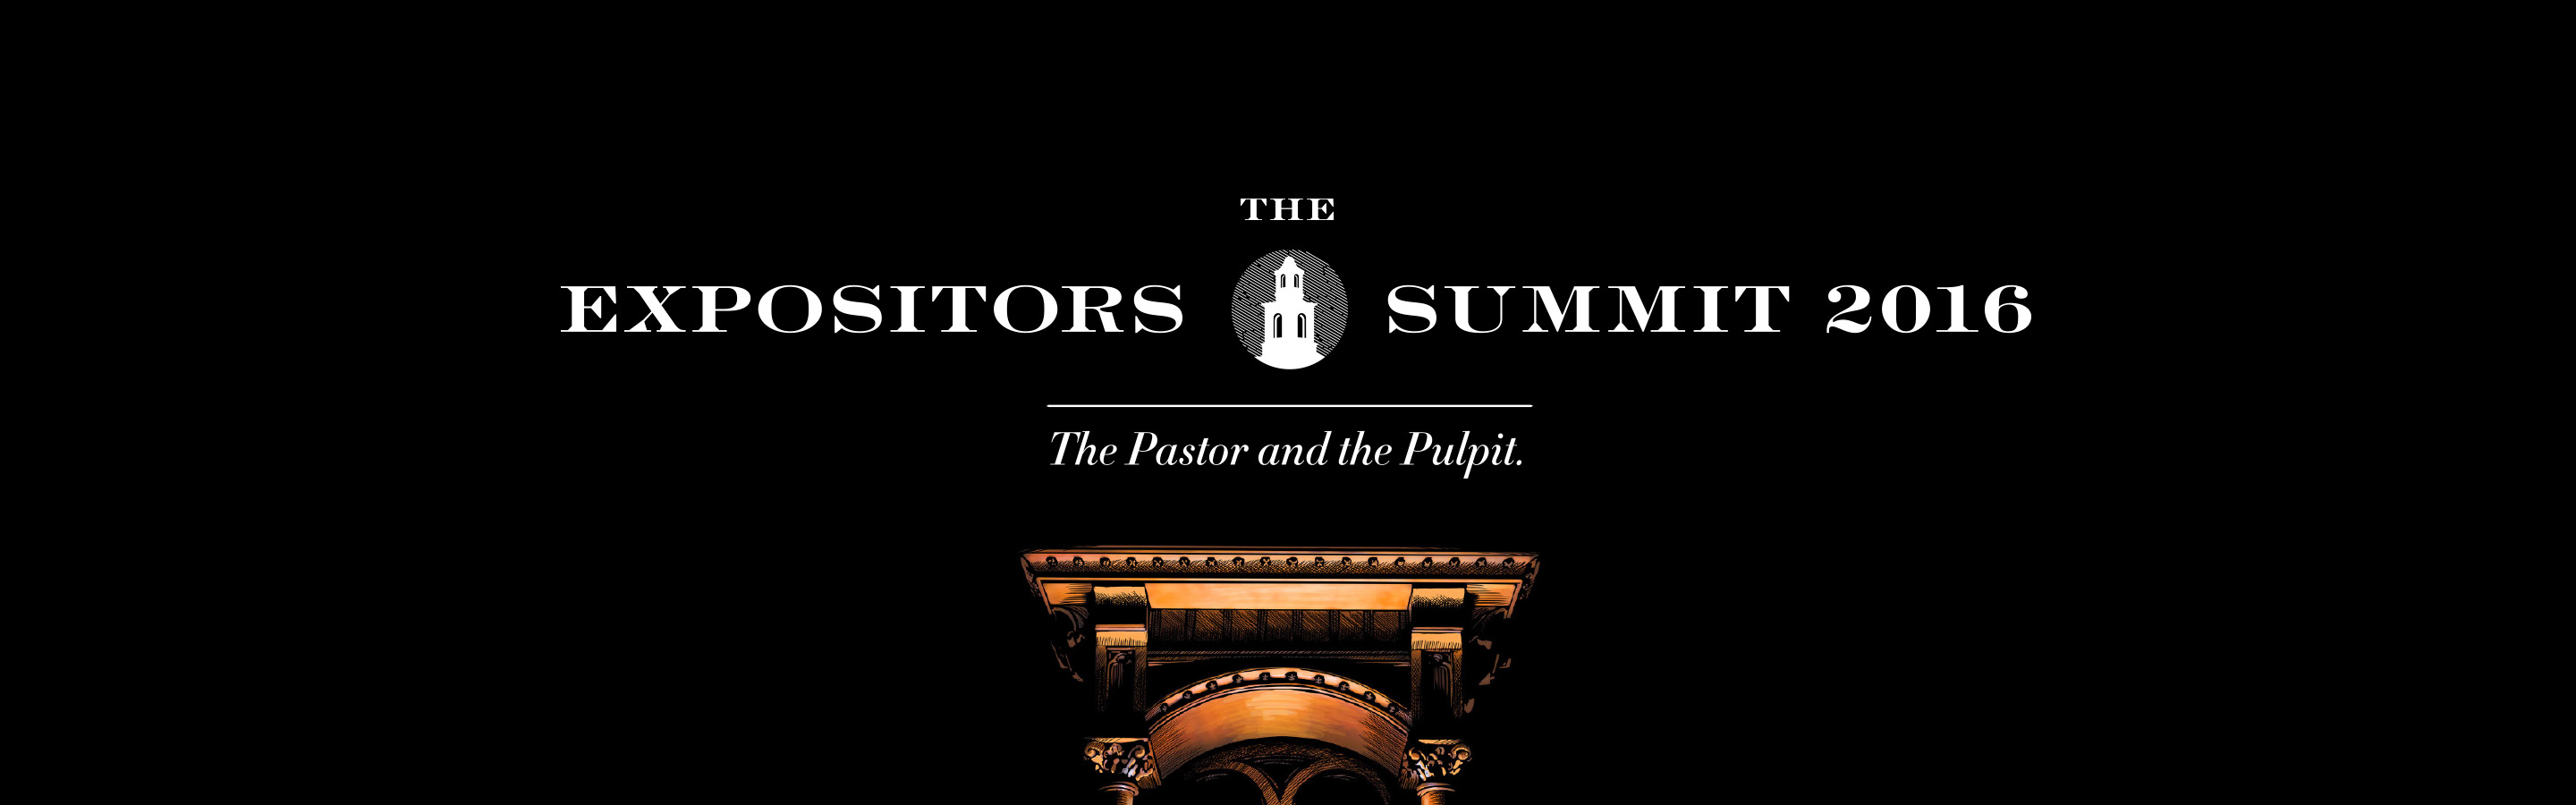 Banner advertisement for The Expositors Summit